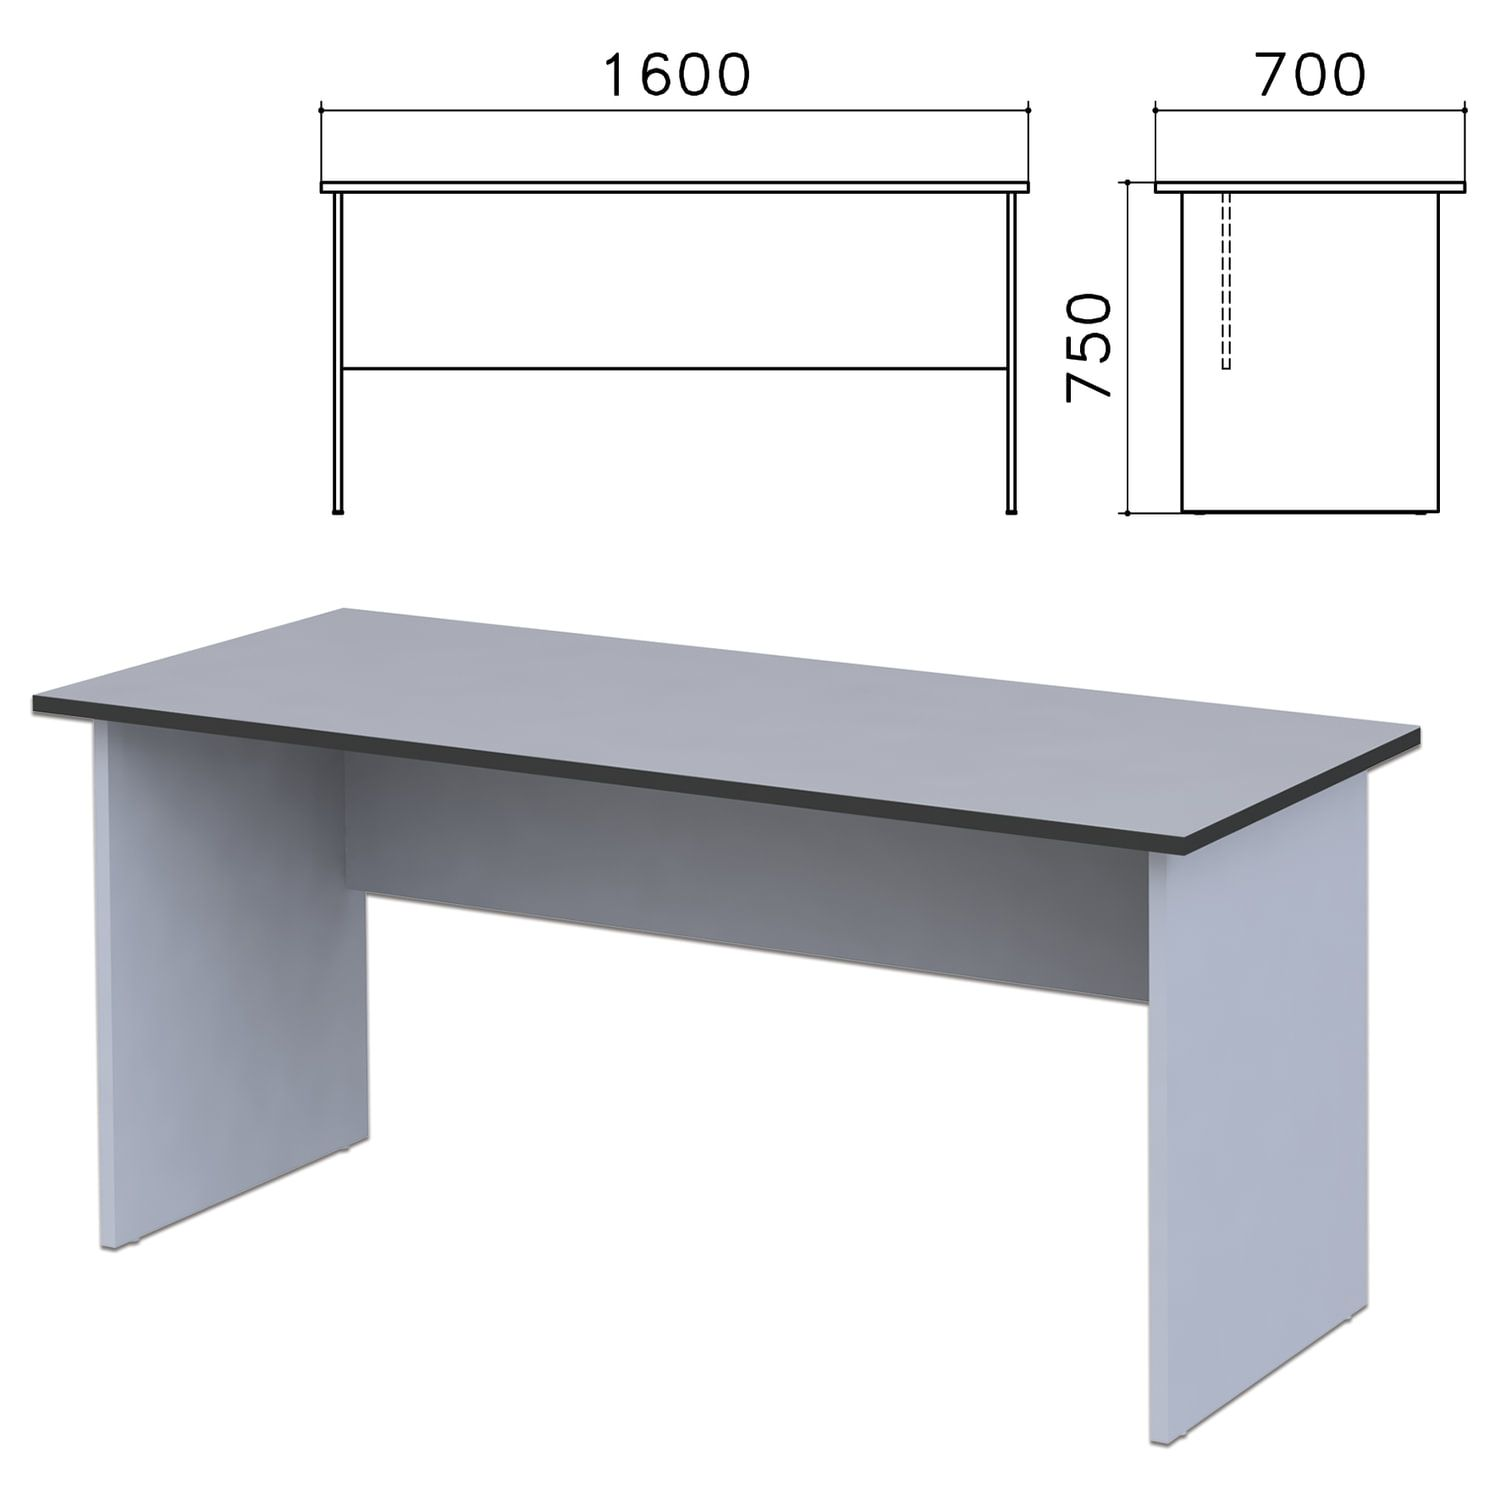 "Table written ""Monolith,"" 1600 x700 x750 mm, color gray"